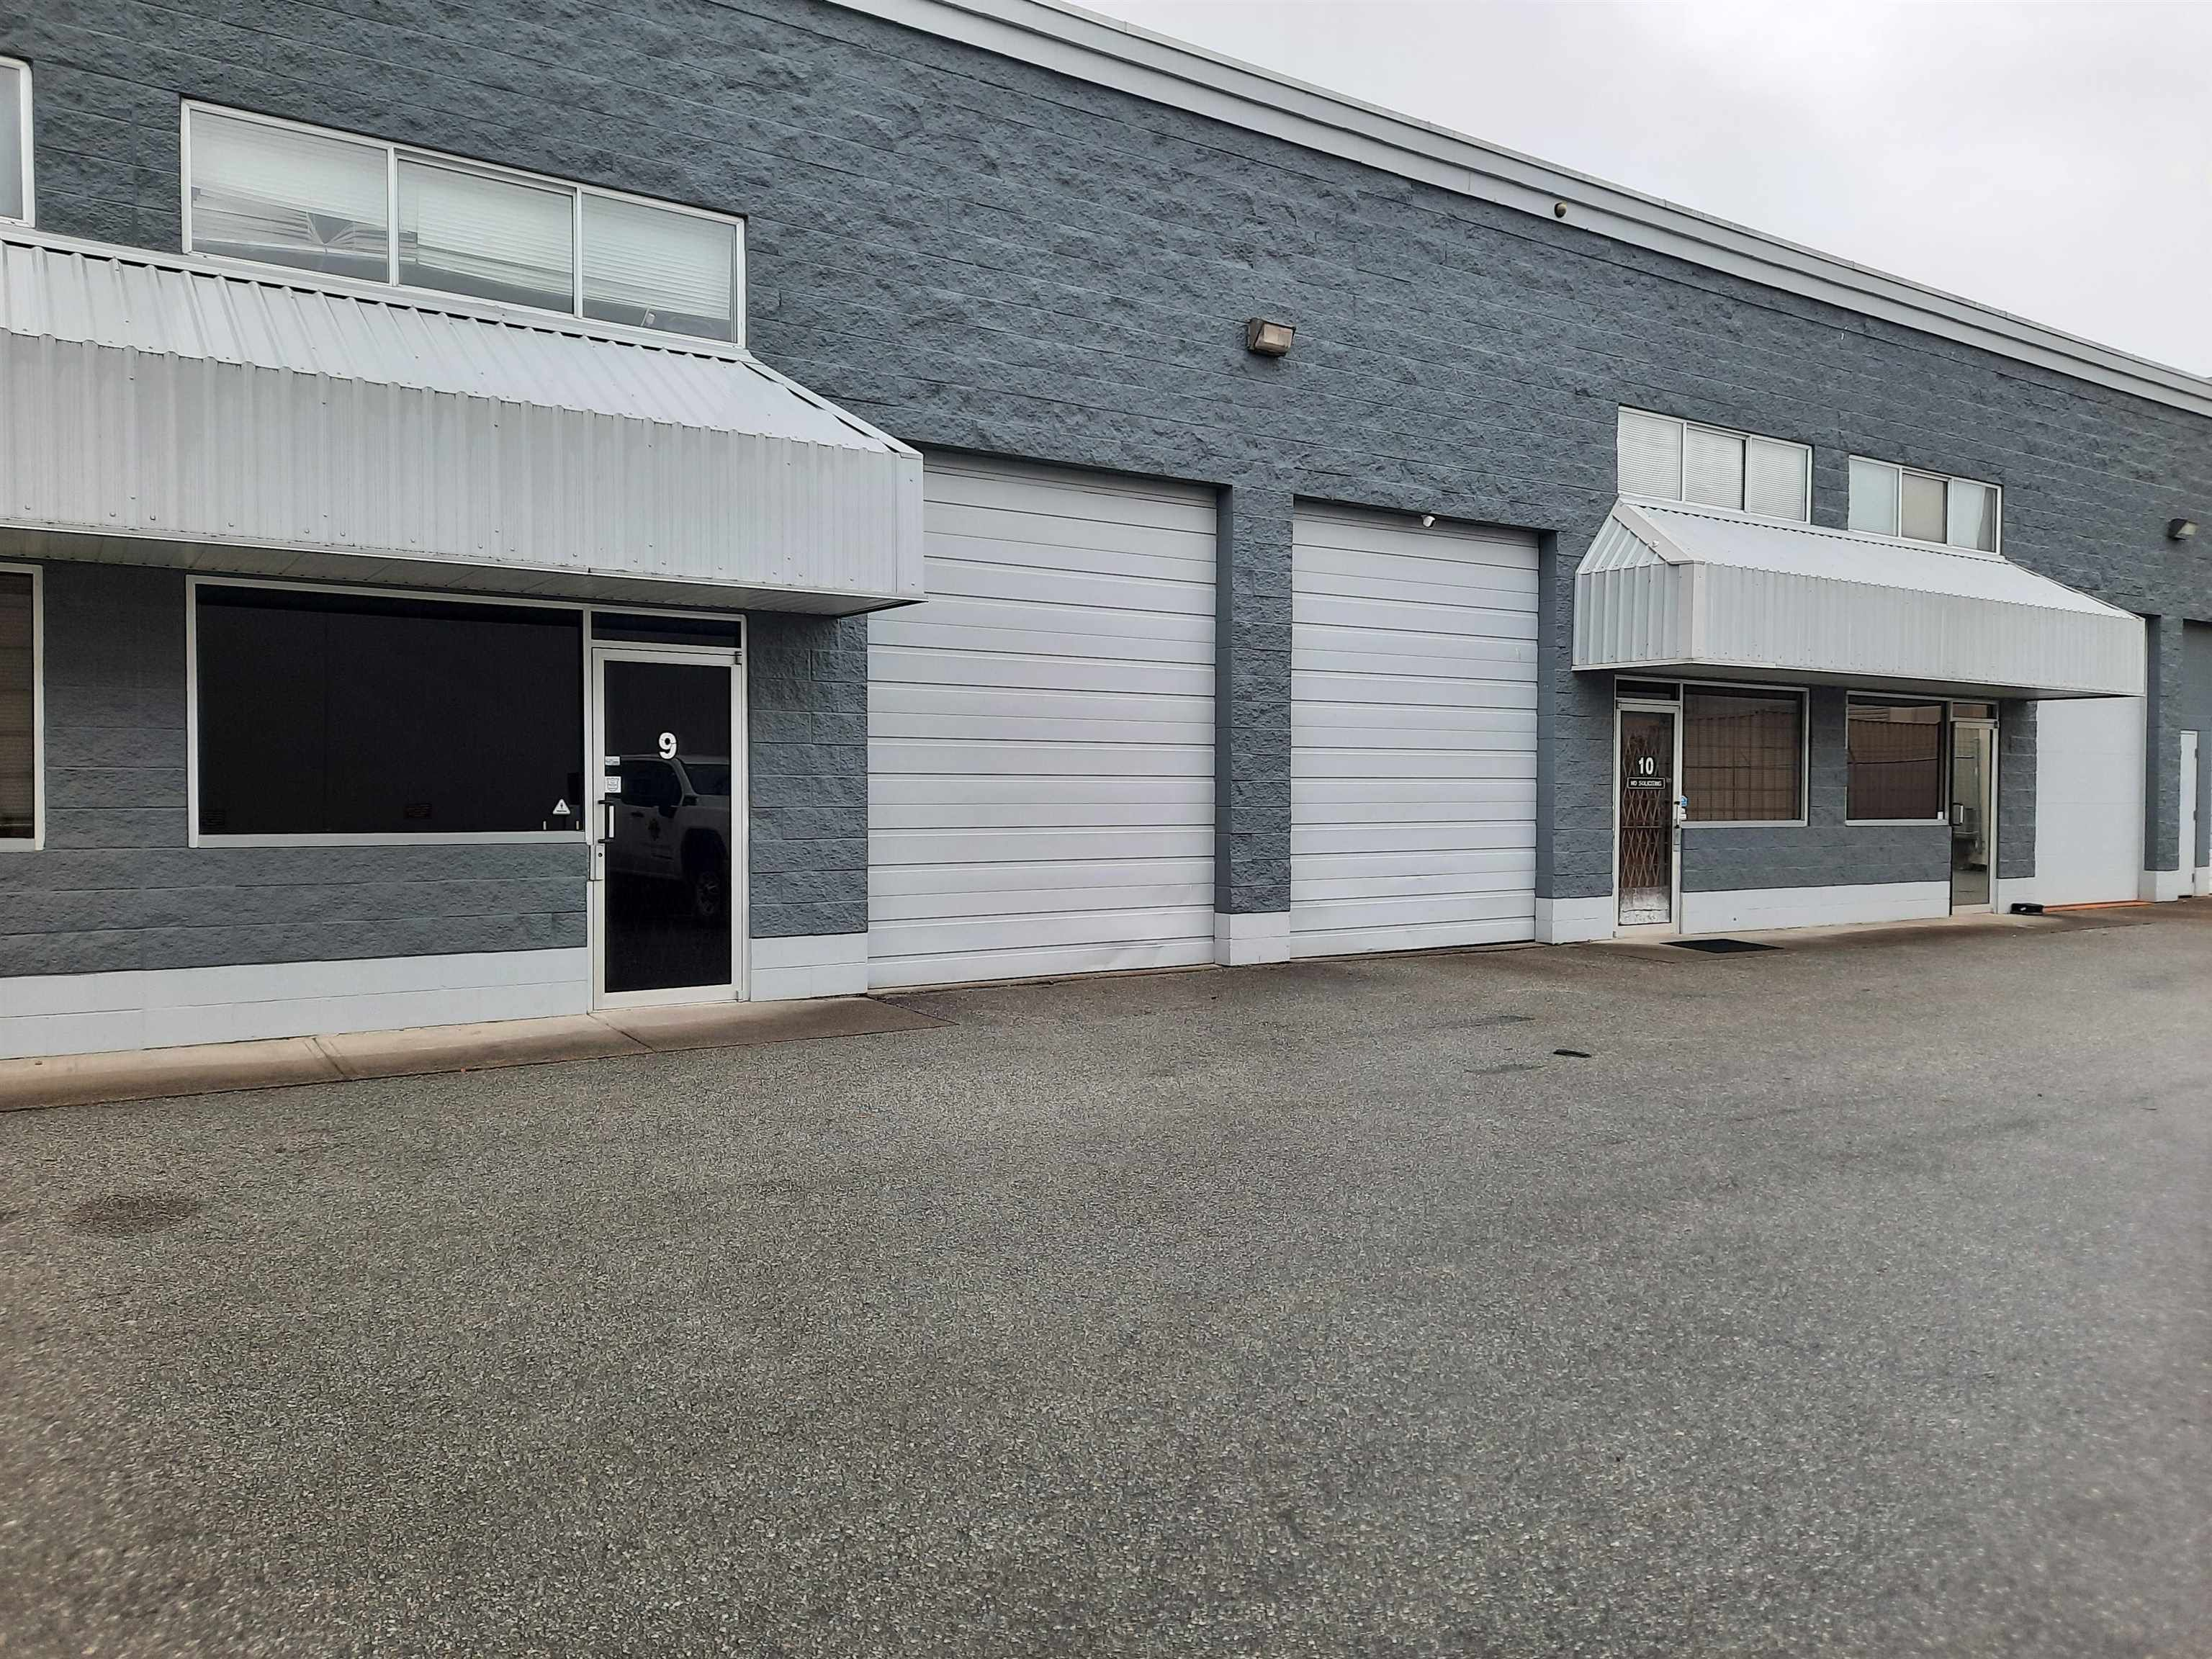 Main Photo: 9 5508 PRODUCTION Boulevard in Surrey: Cloverdale BC Industrial for sale (Cloverdale)  : MLS®# C8040216